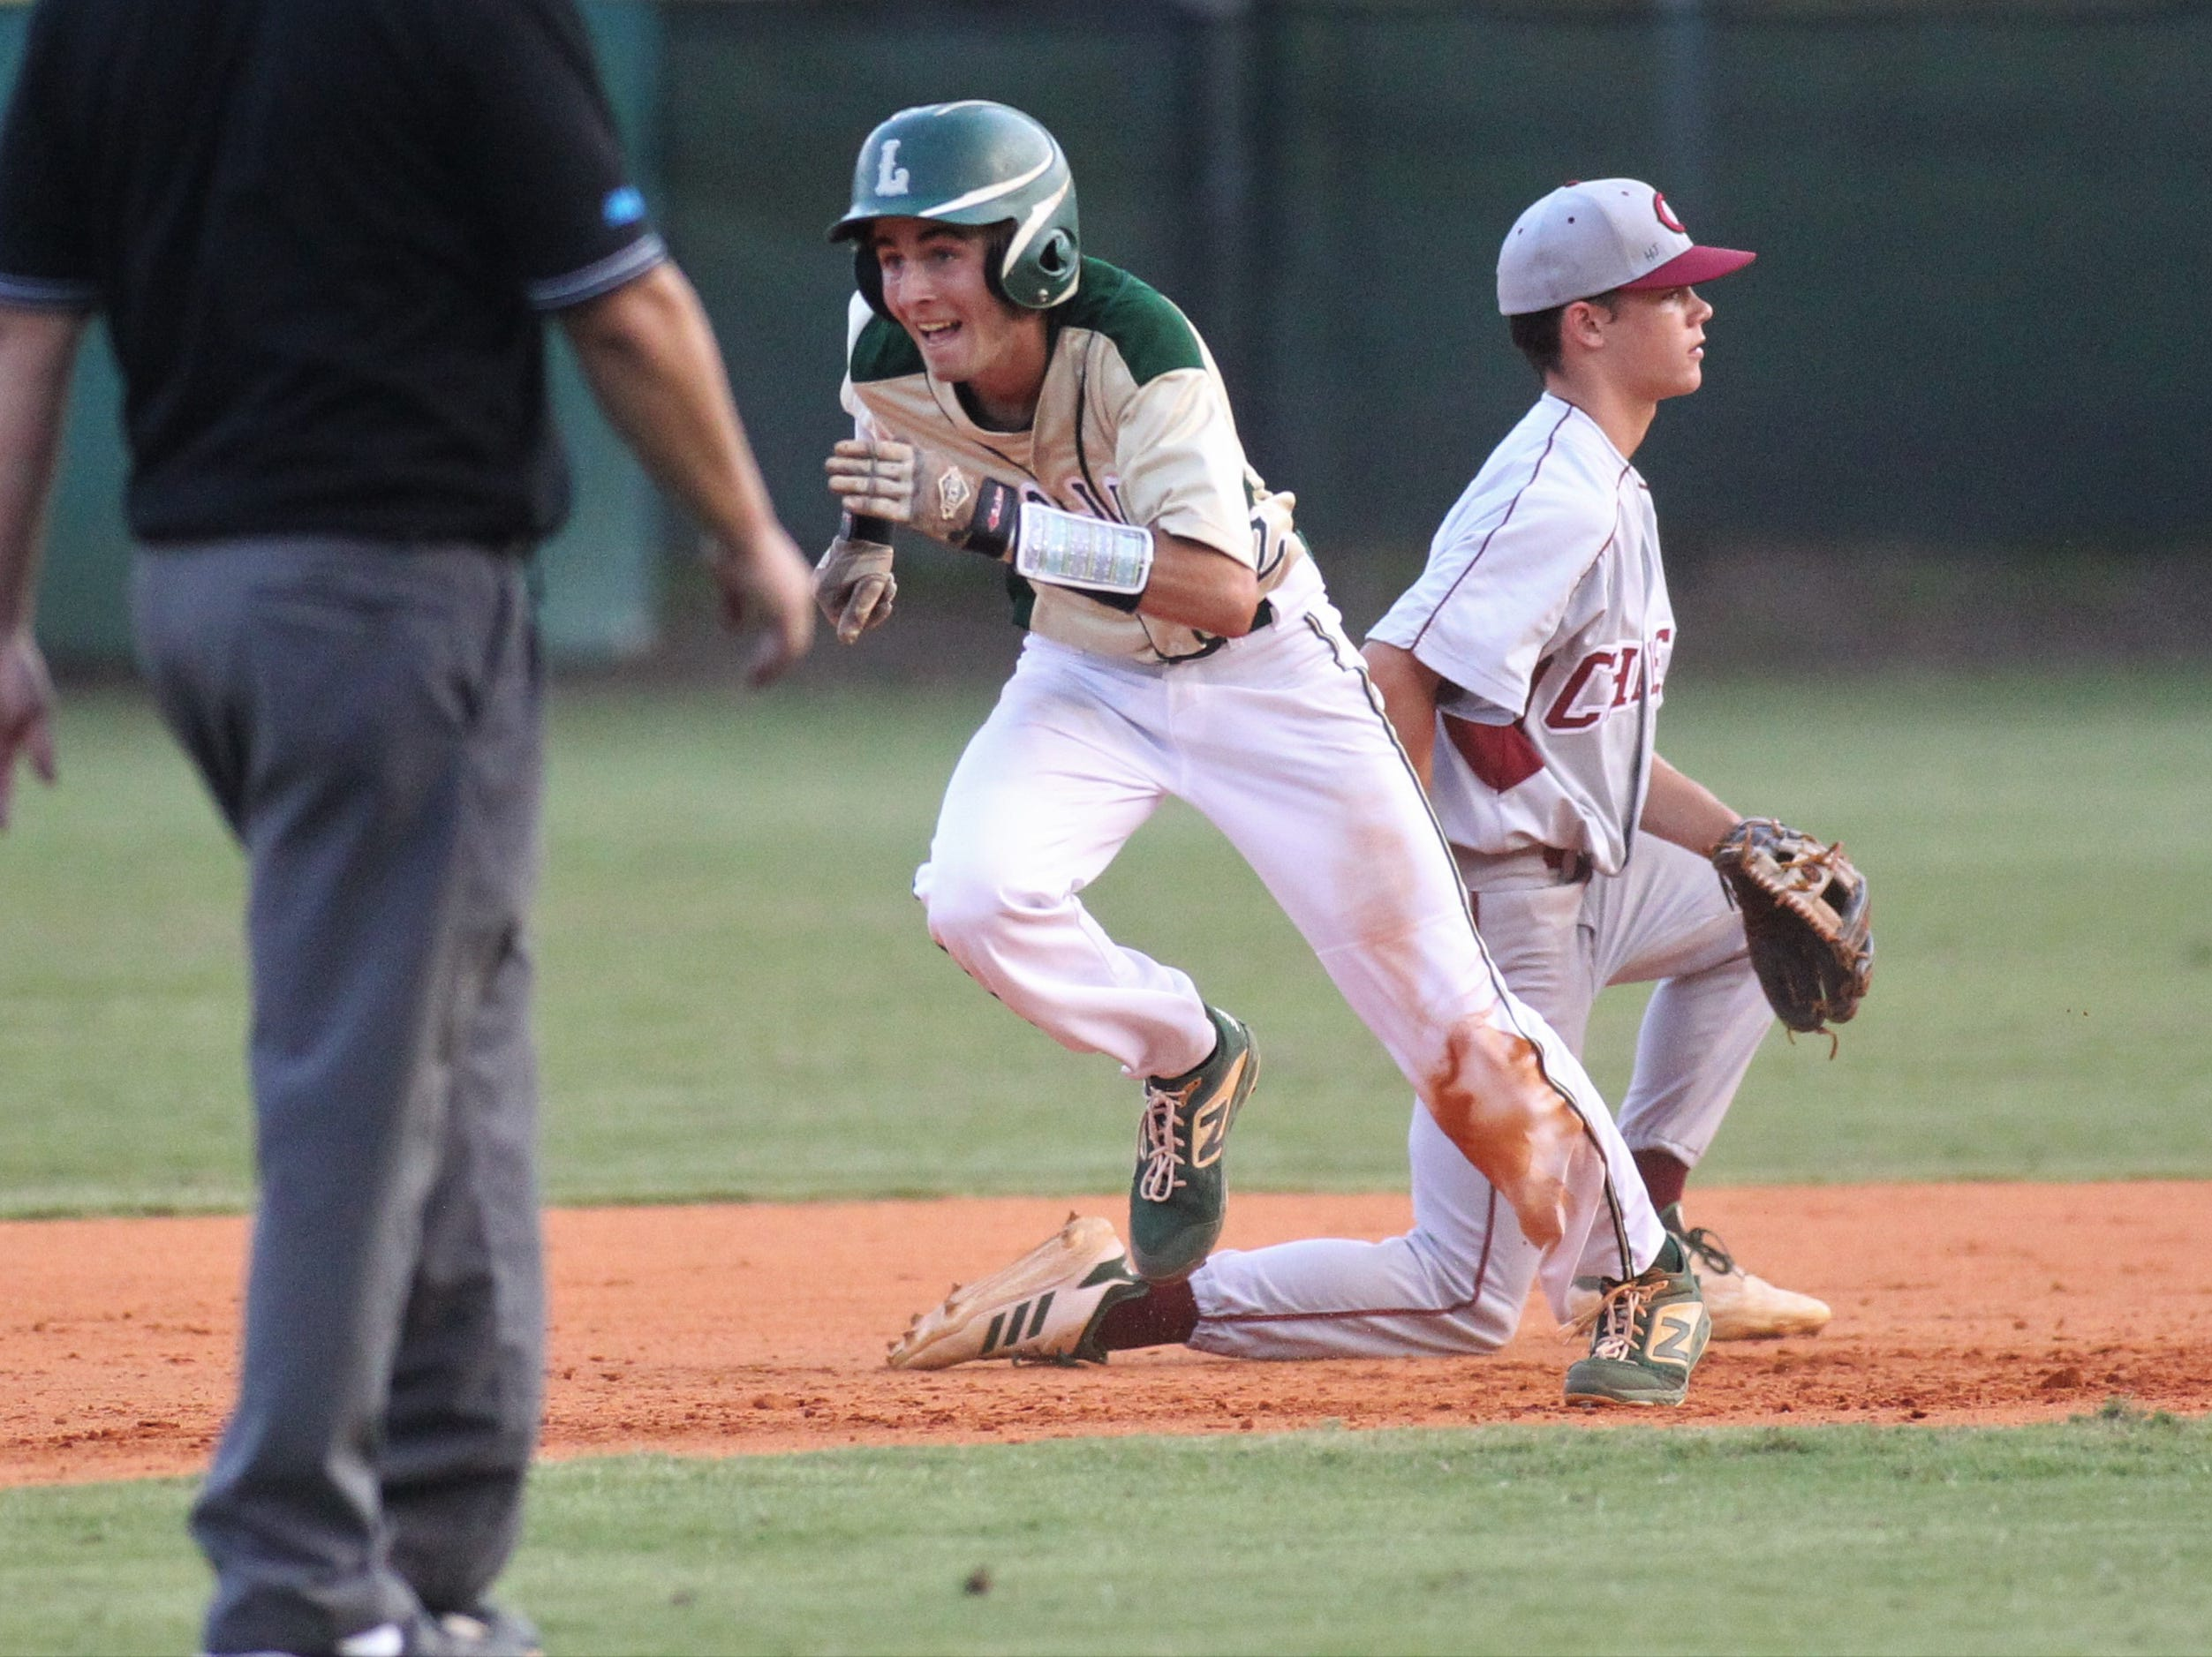 Lincoln senior Jackson White races to third after an error as Lincoln baseball beat Chiles 5-4  in 10 innings during a District 2-8A championship game on Thursday, May 9, 2019.